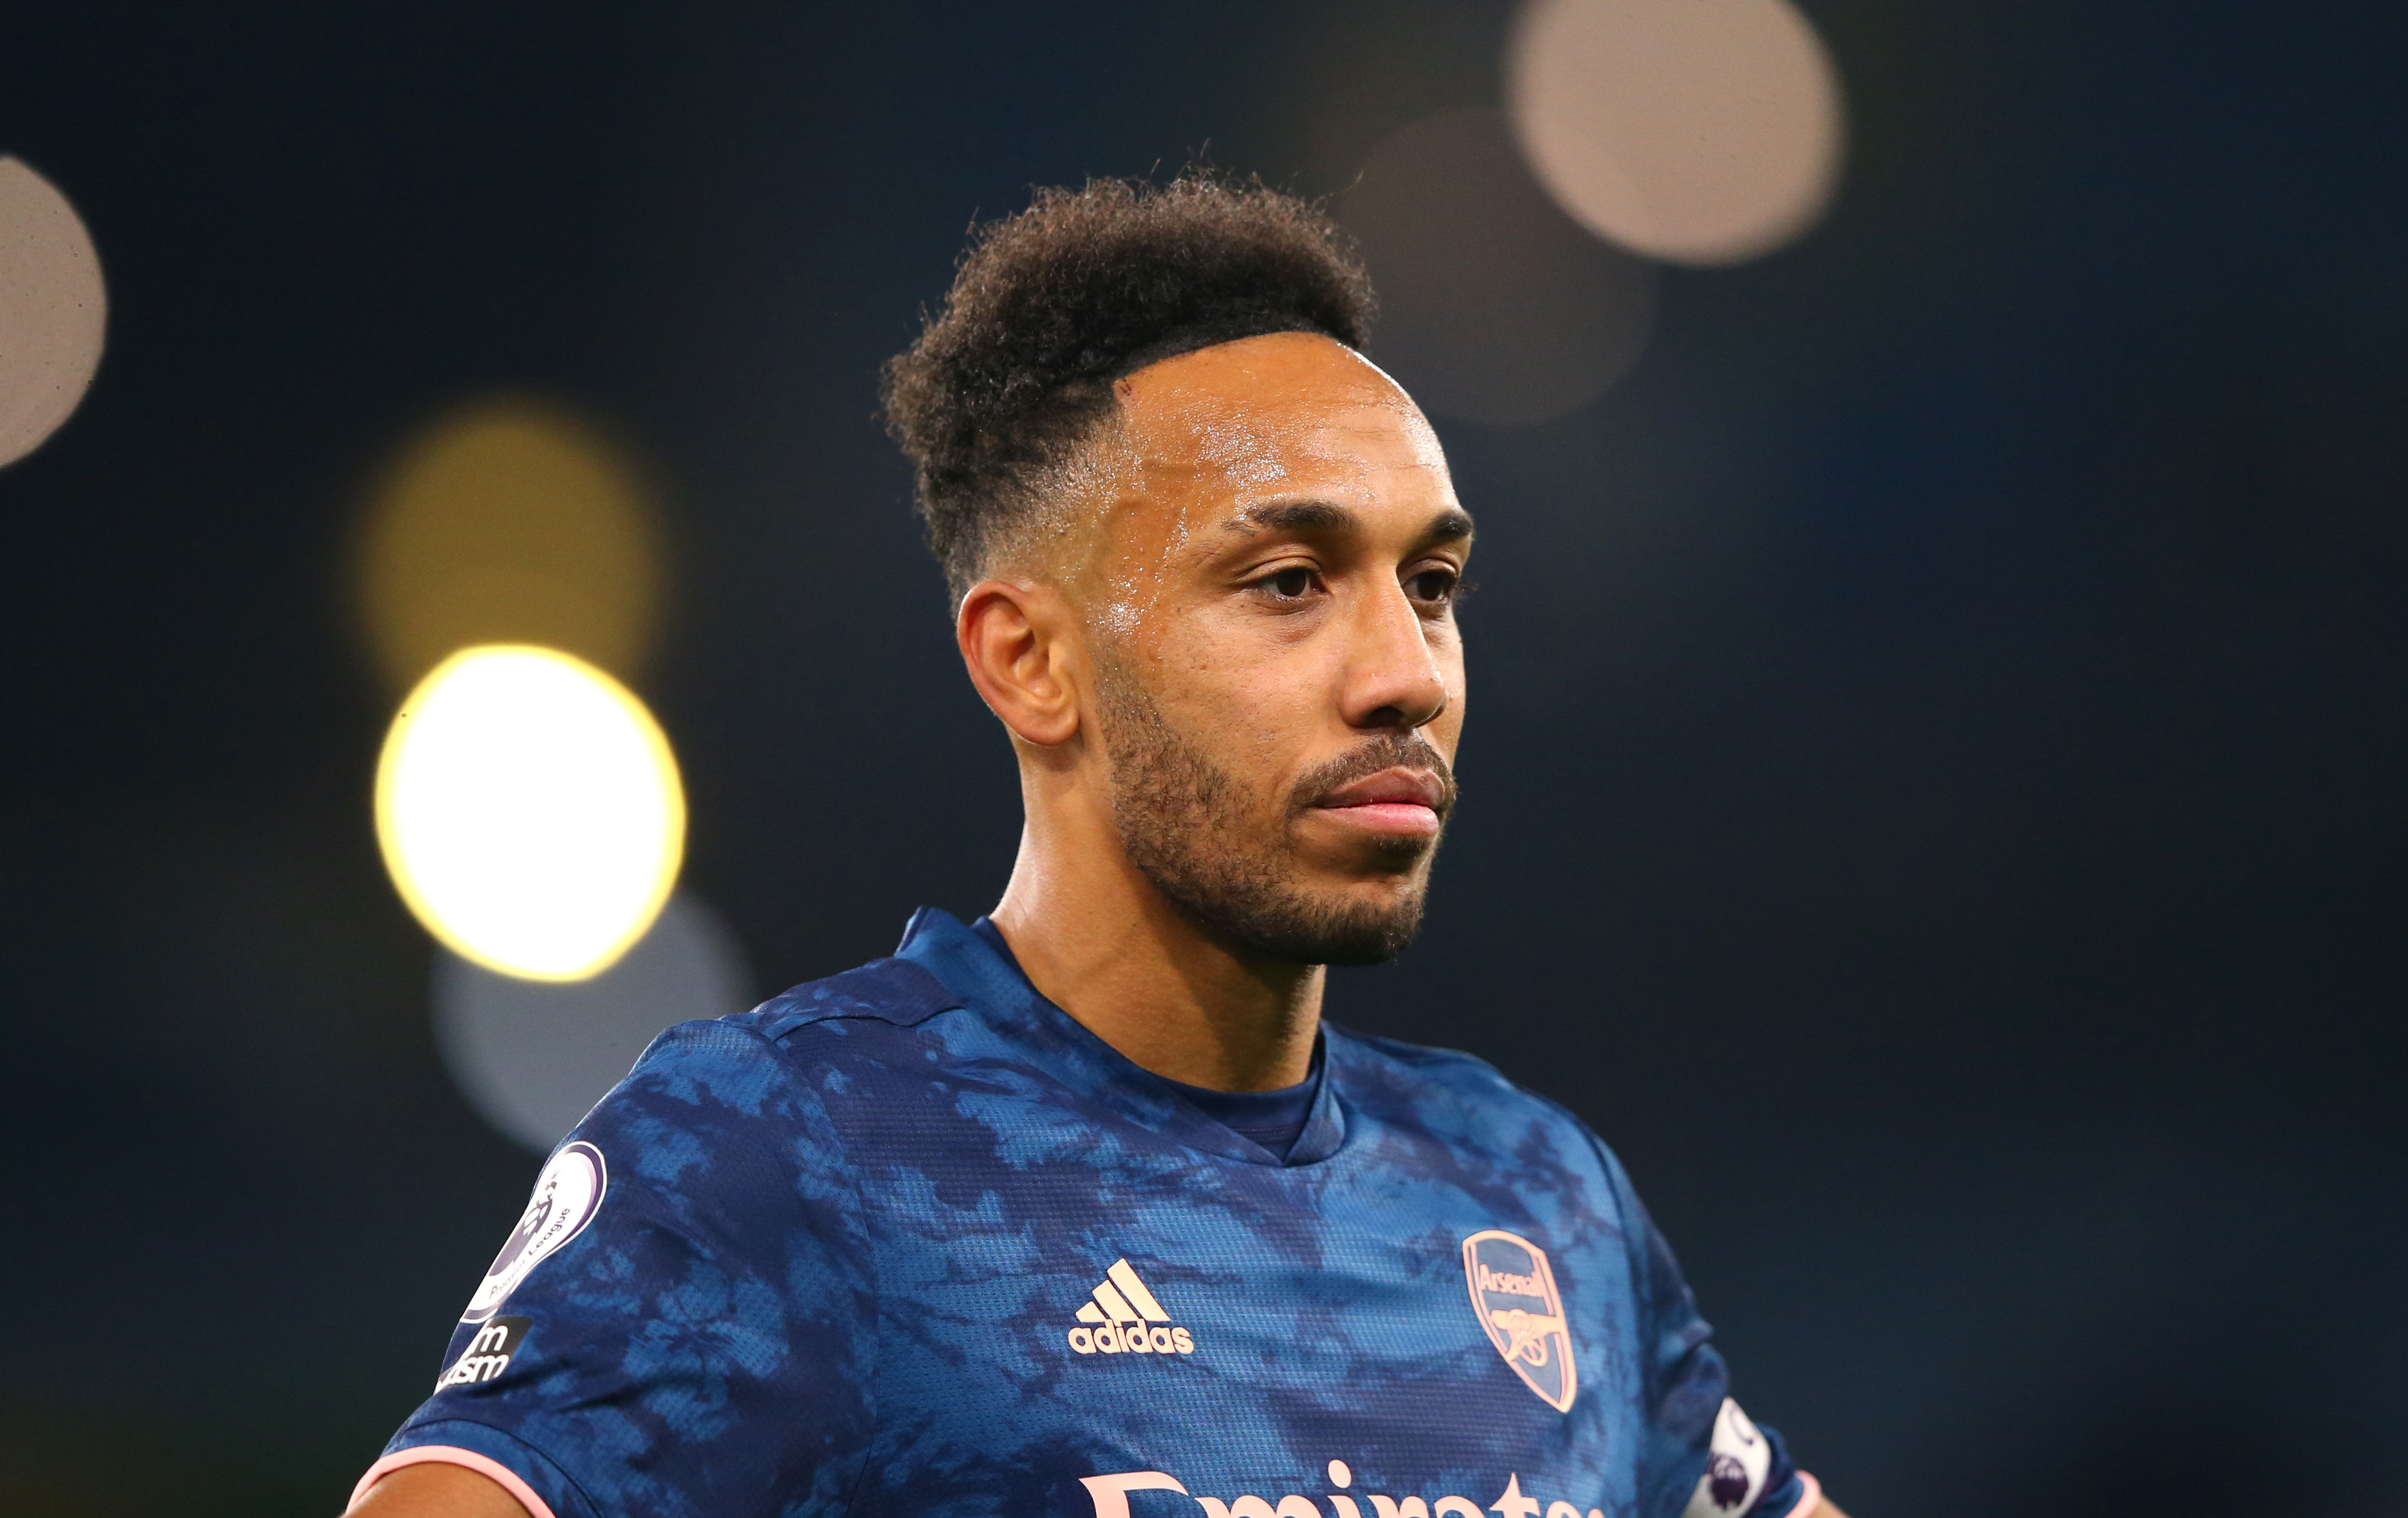 Predicted Arsenal Lineup Vs West Bromwich Albion - Aubameyang set to return.